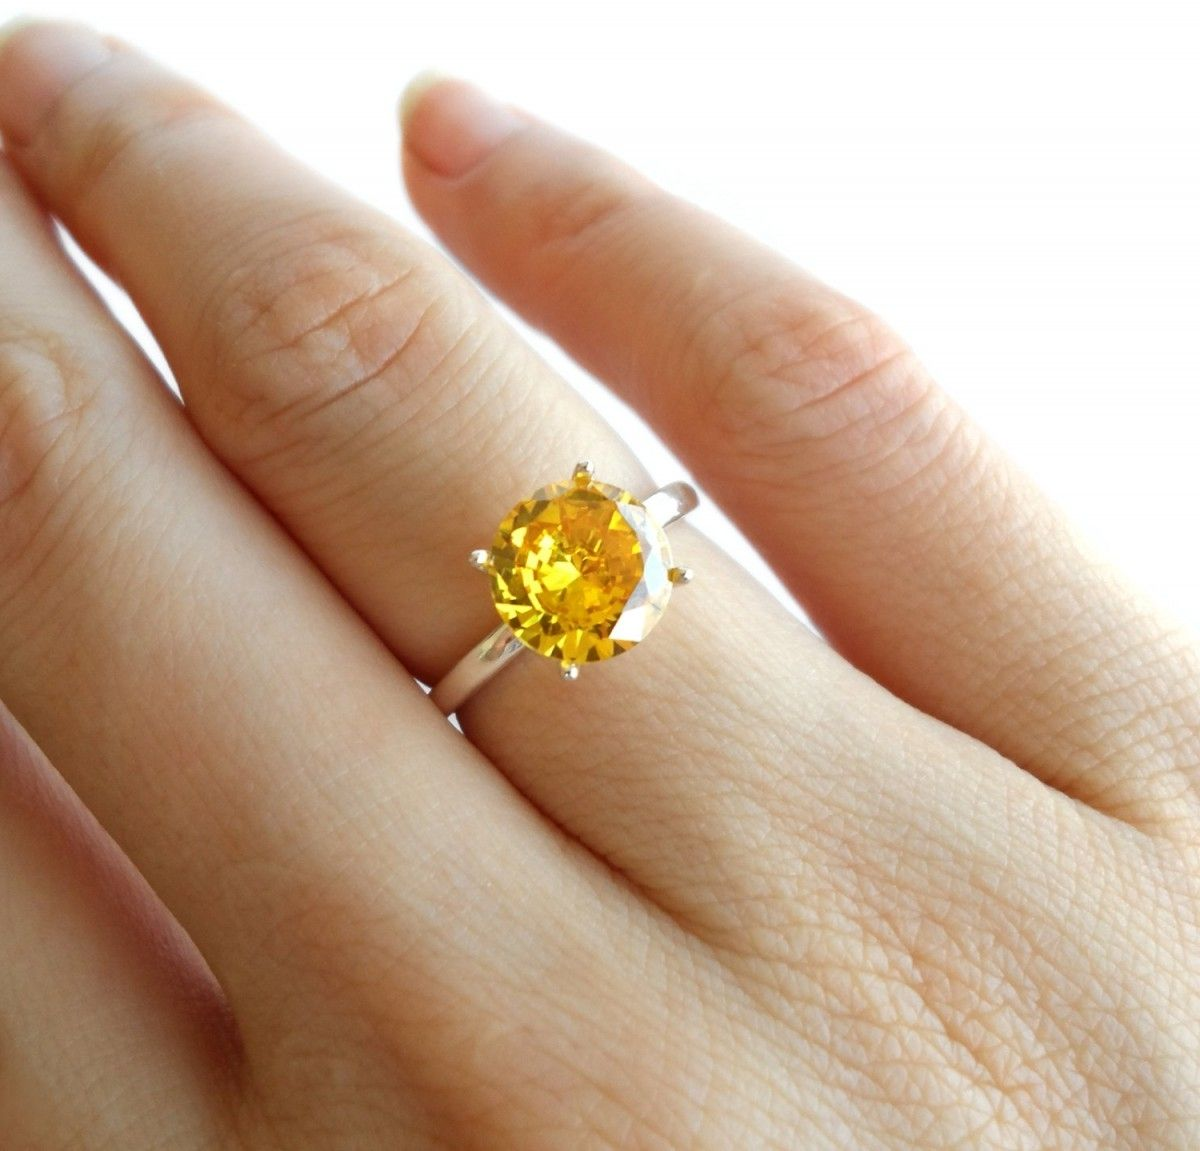 rose engagement rings canary yellow harry ring wedding winston gold diamond carat morganite over